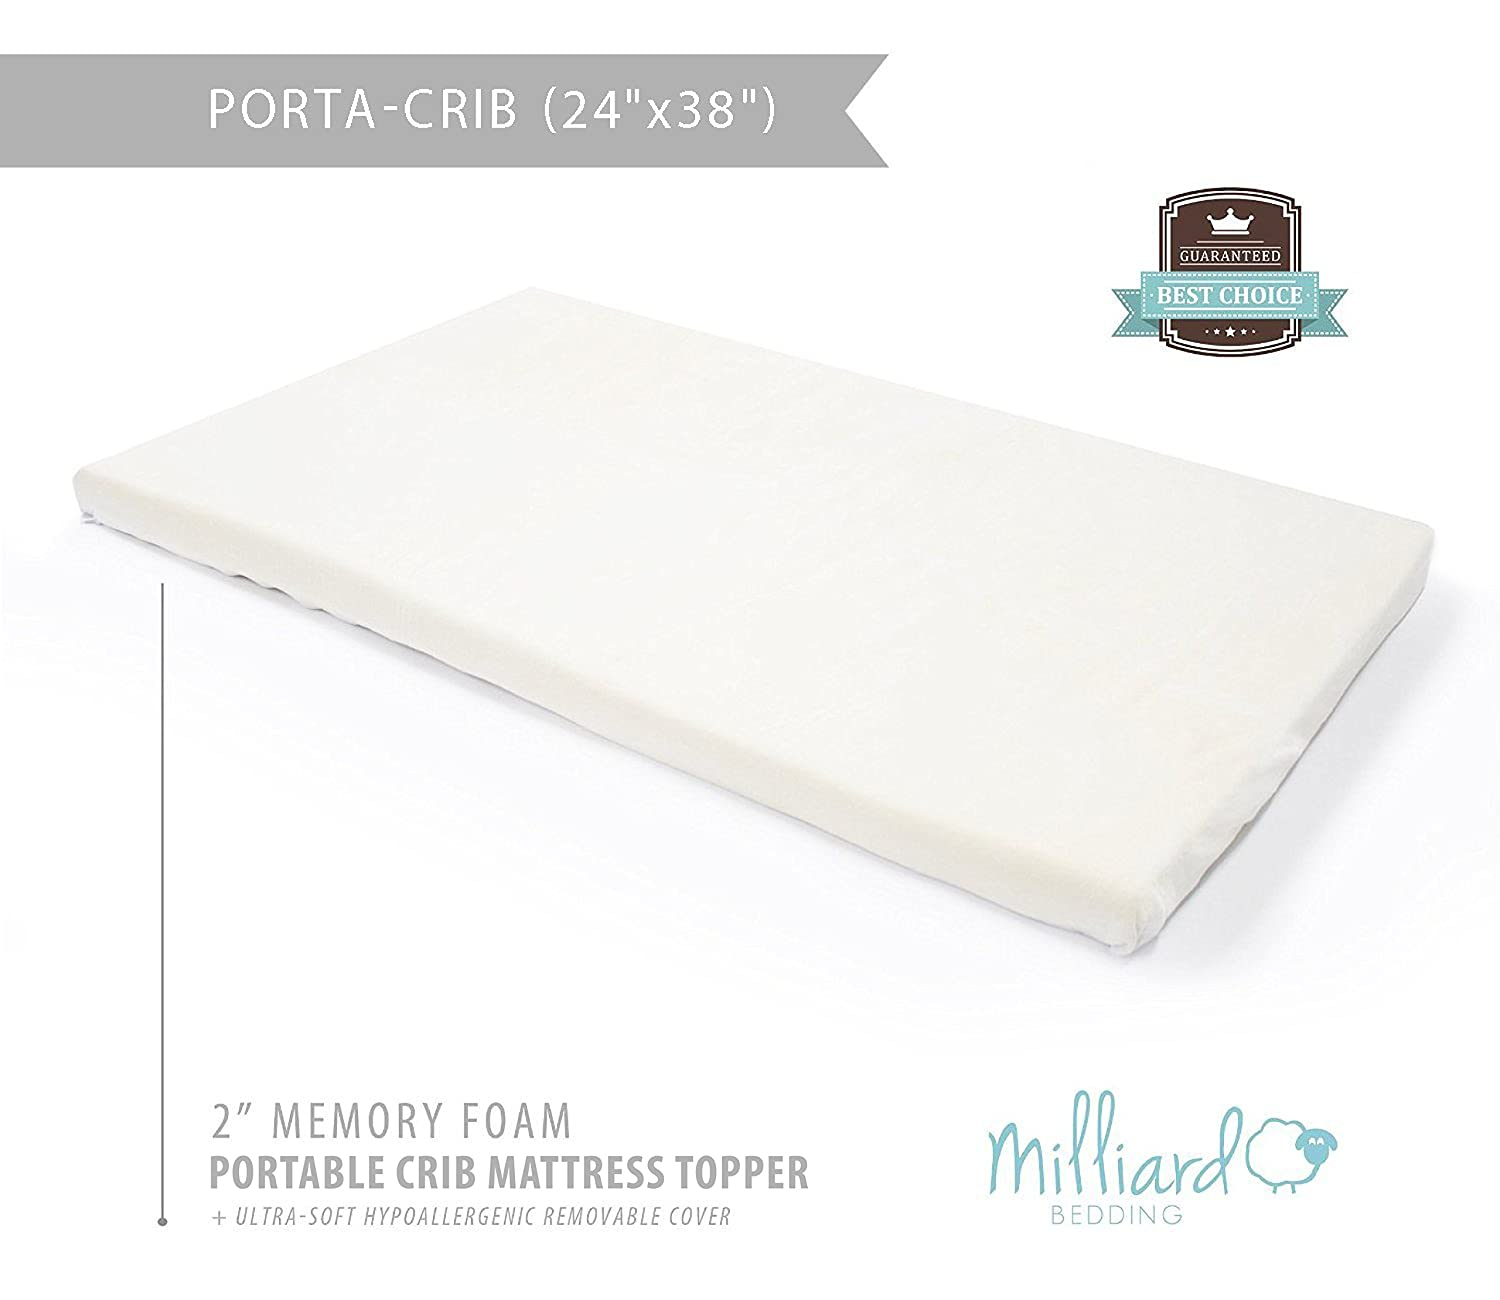 "Amazon.com : Milliard Portable Crib Mattress Topper - 2in. Ventilated  Memory Foam with Removable Waterproof 65-Percent Cotton Non-Slip Cover -  38"" x 24"" x ..."